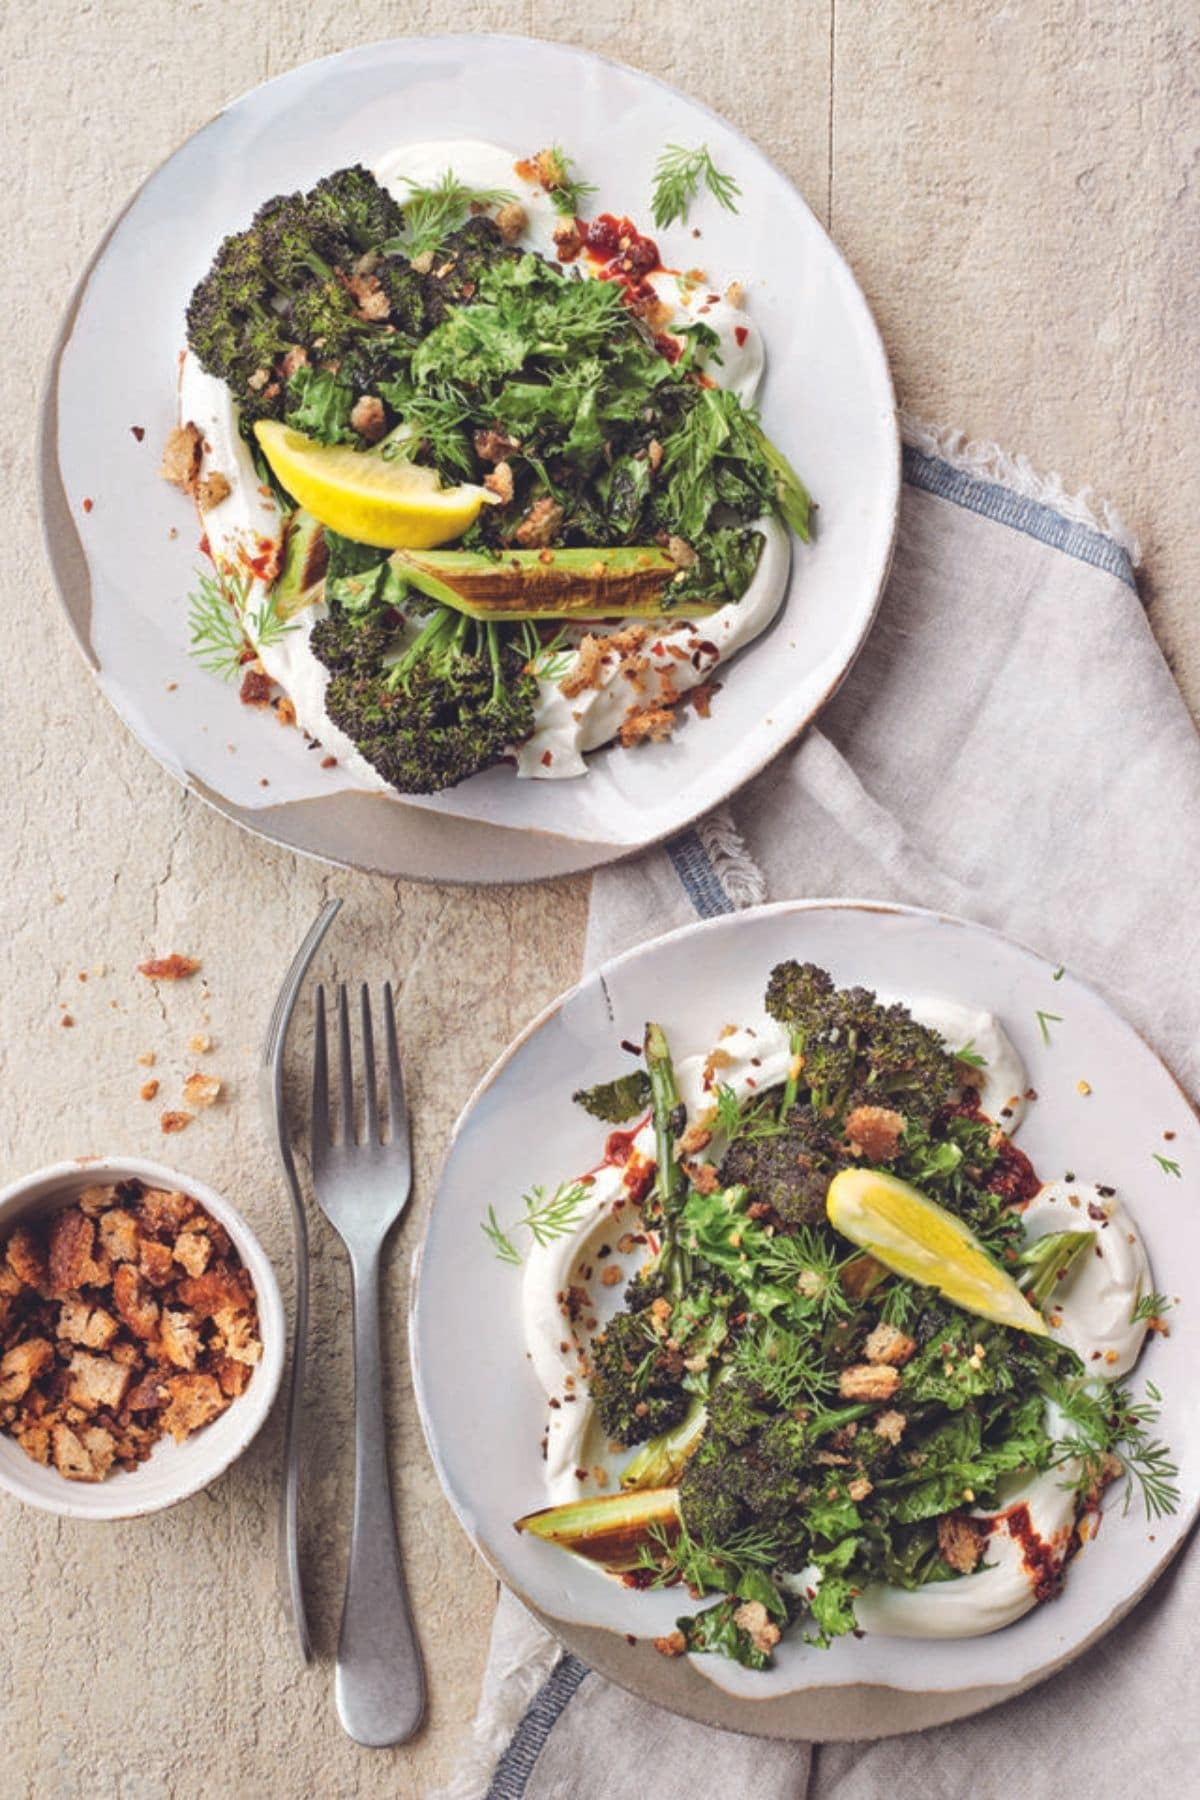 Greens with squash on white plates on brown table